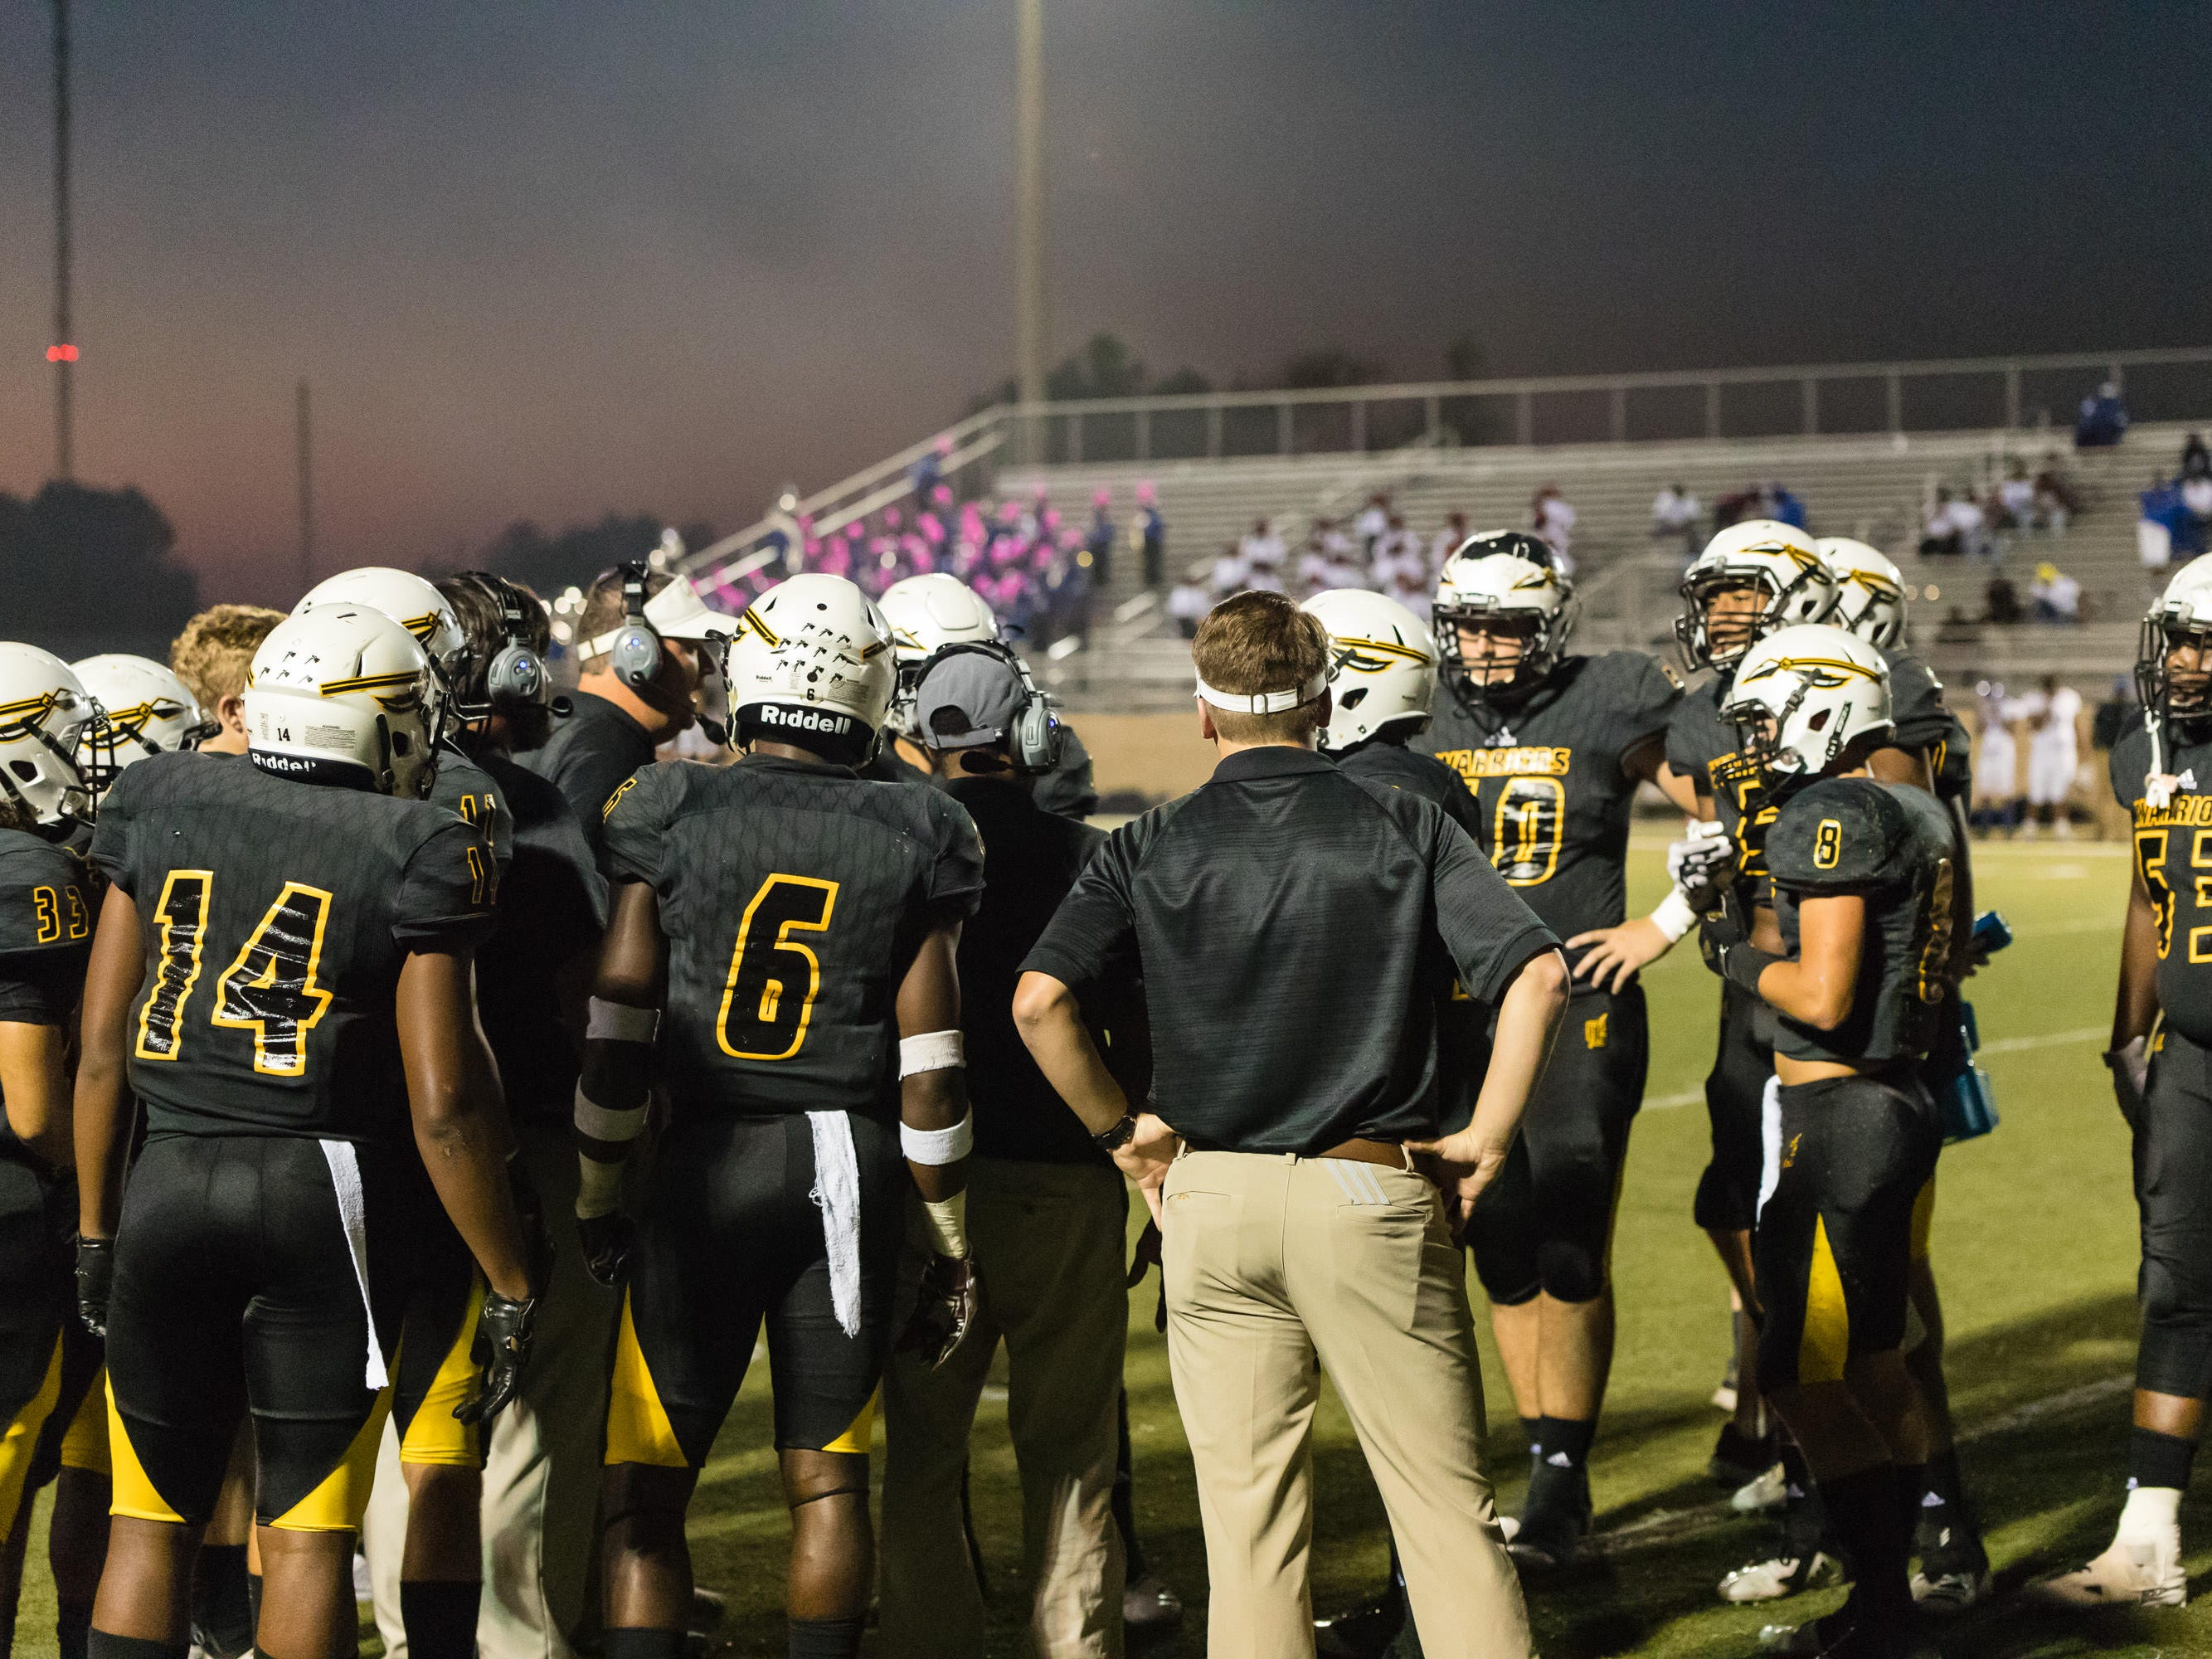 The Oak Grove Warriors huddle before taking the field for kickoff.